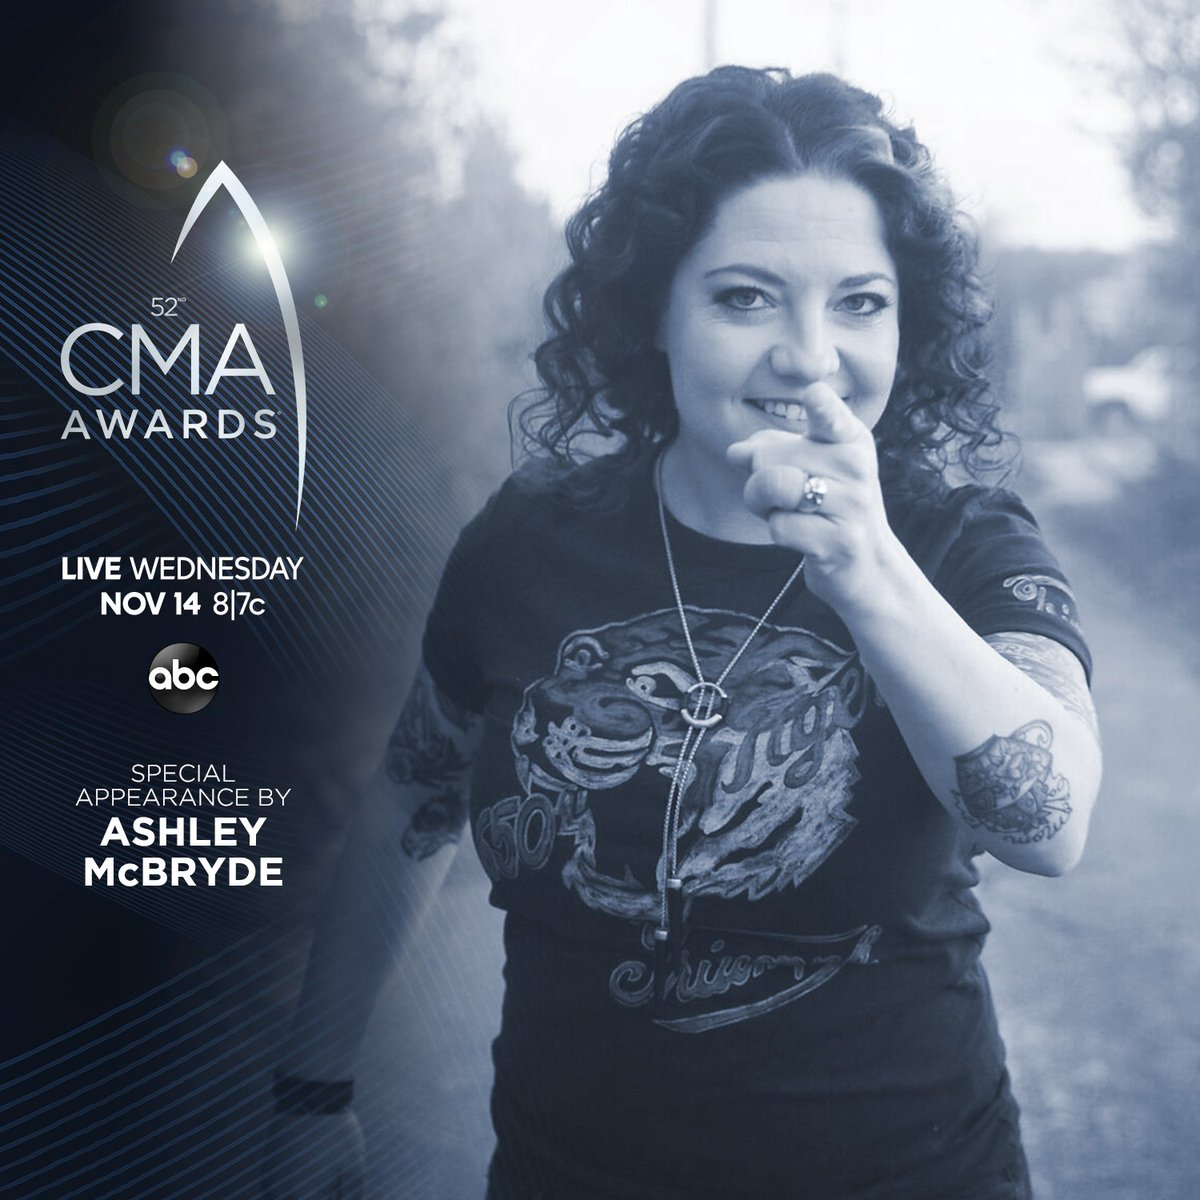 Dont miss a special appearance by @AshleyMcBryde on the #CMAawards this Wednesday at 8|7c on @ABCNetwork. CMAawards.com